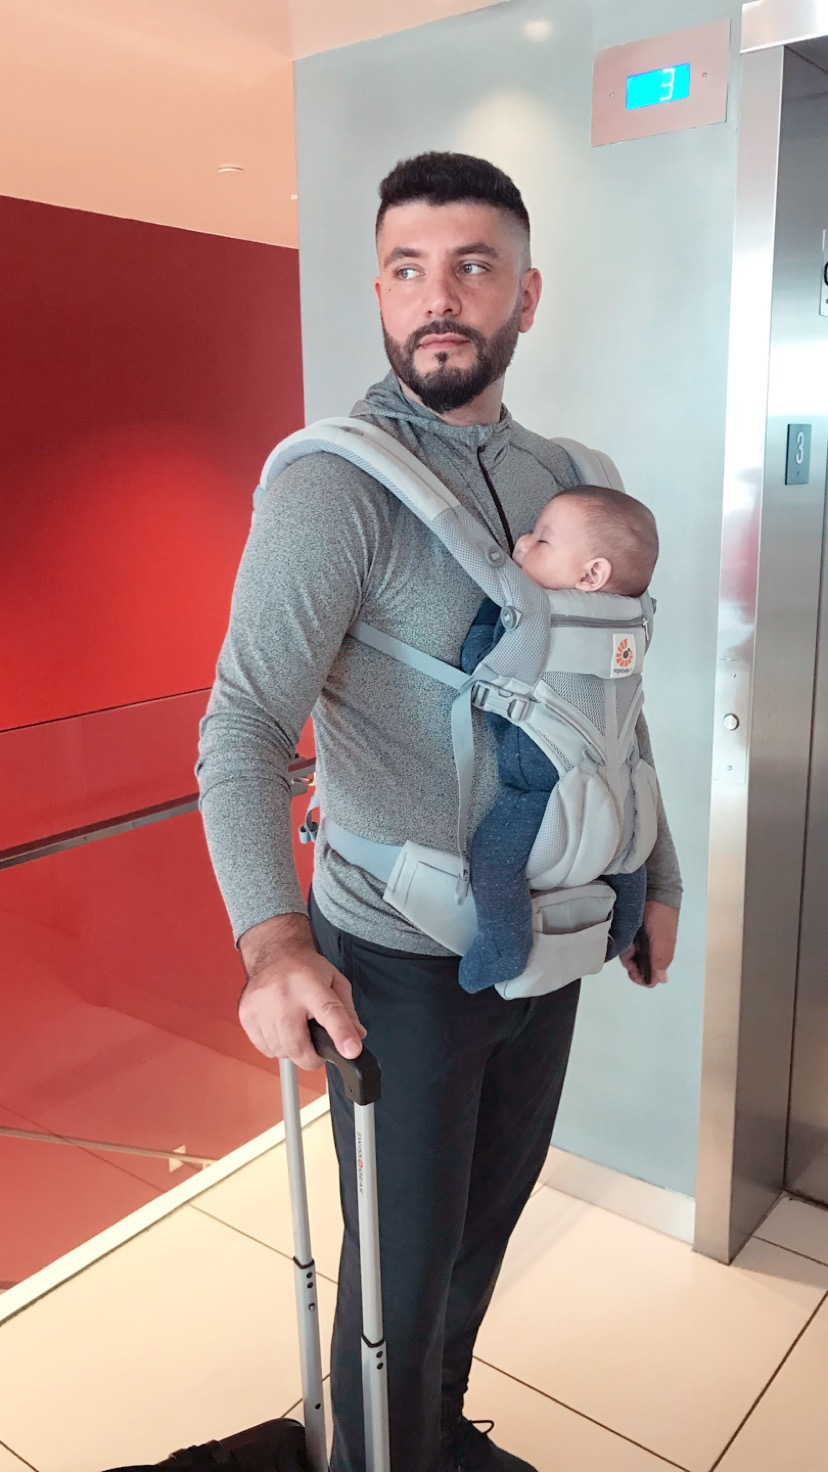 baby carrier while travelling.JPG